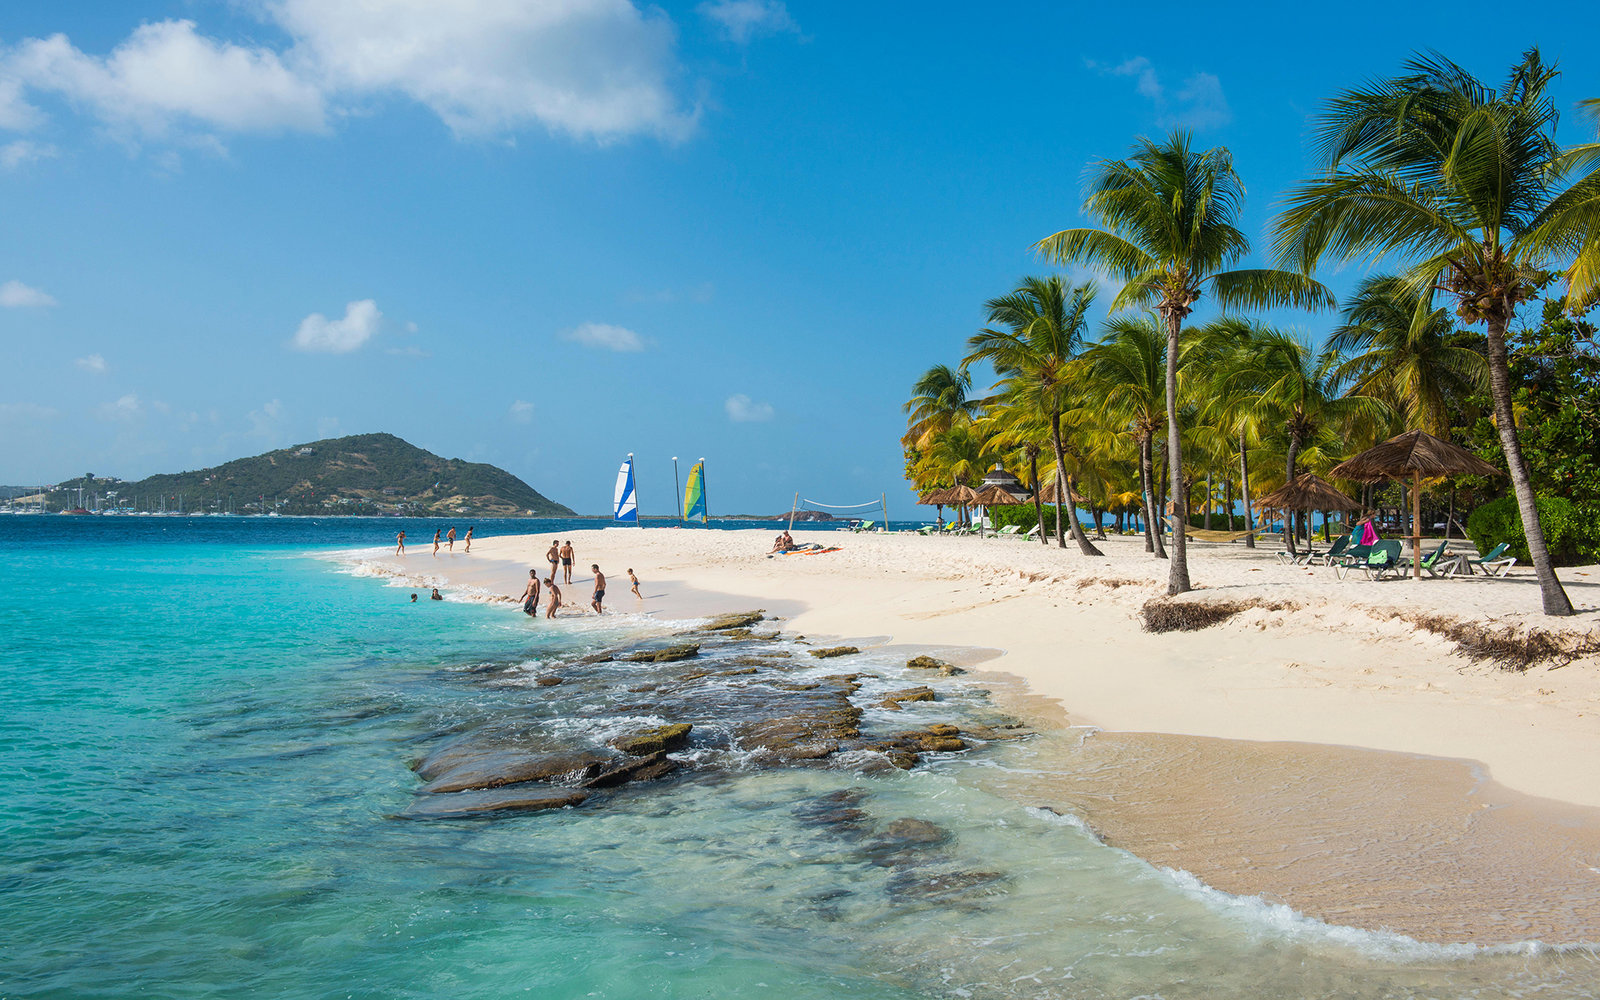 Affordable Private Island Palm Island St. Vincent and the Grenadines